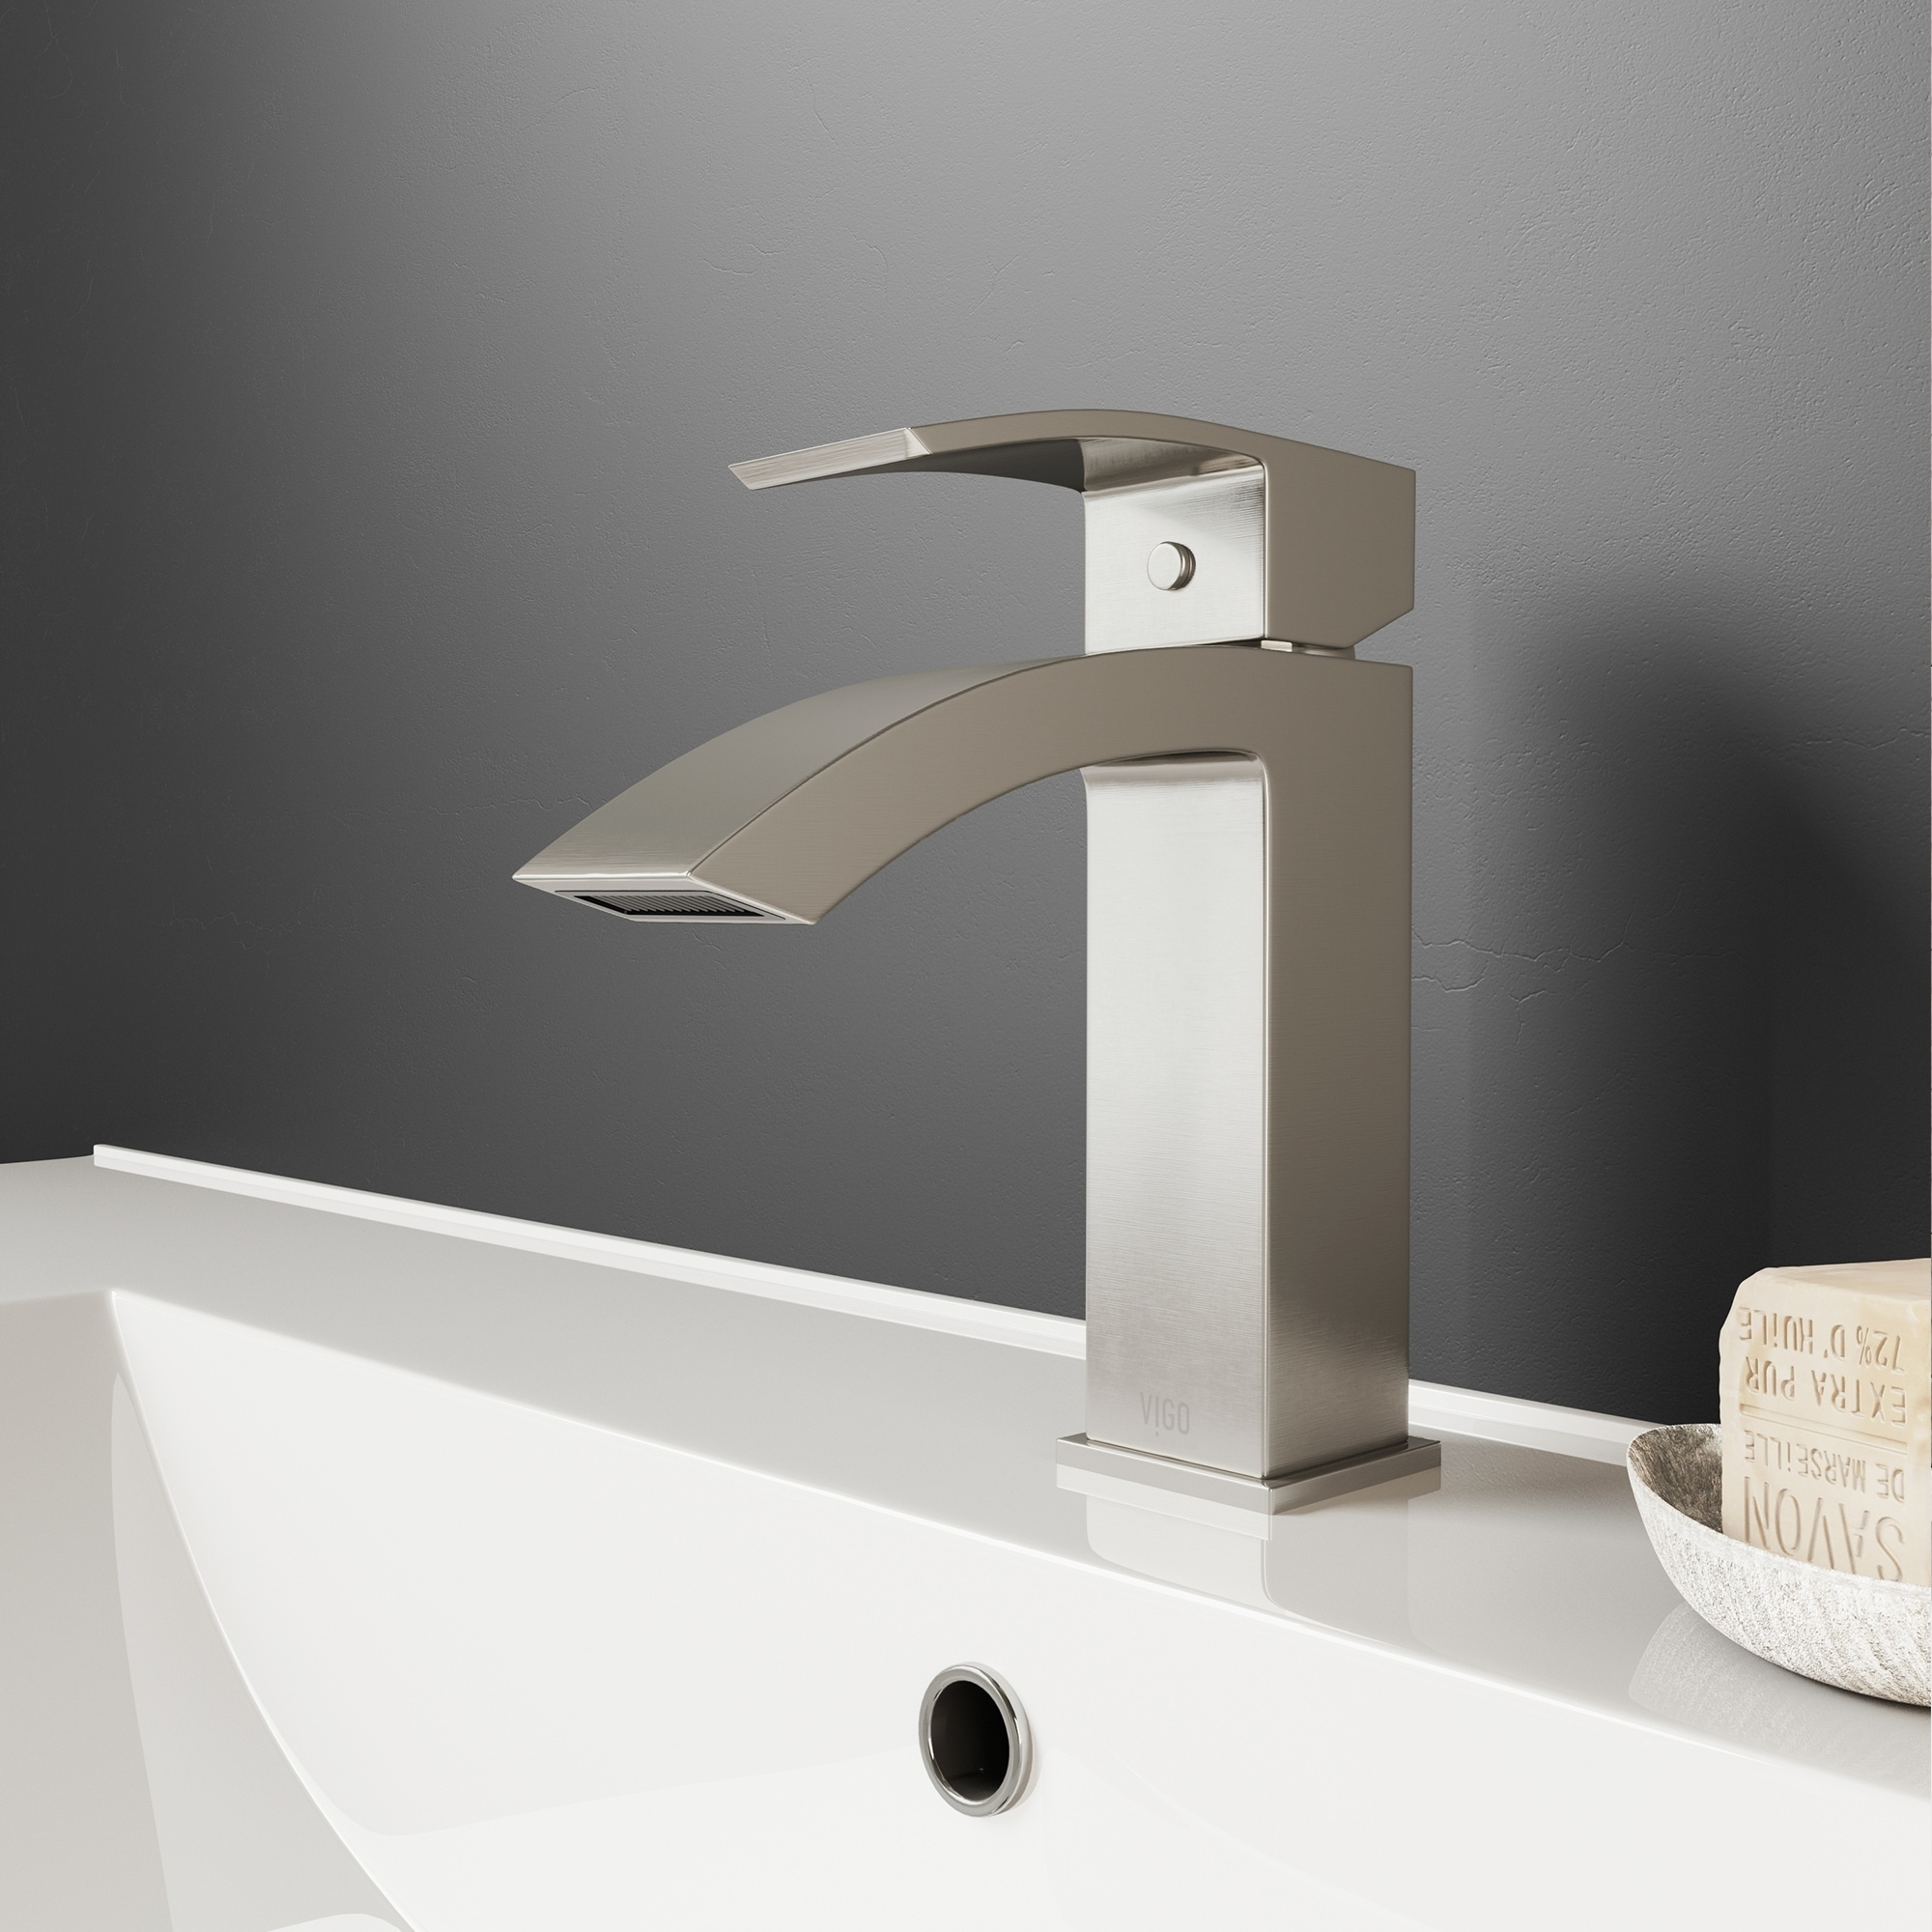 purist faucet bathroom single design bv k bancroft inspiration sink faucets tall glamorous lever with handle kohler hole straight